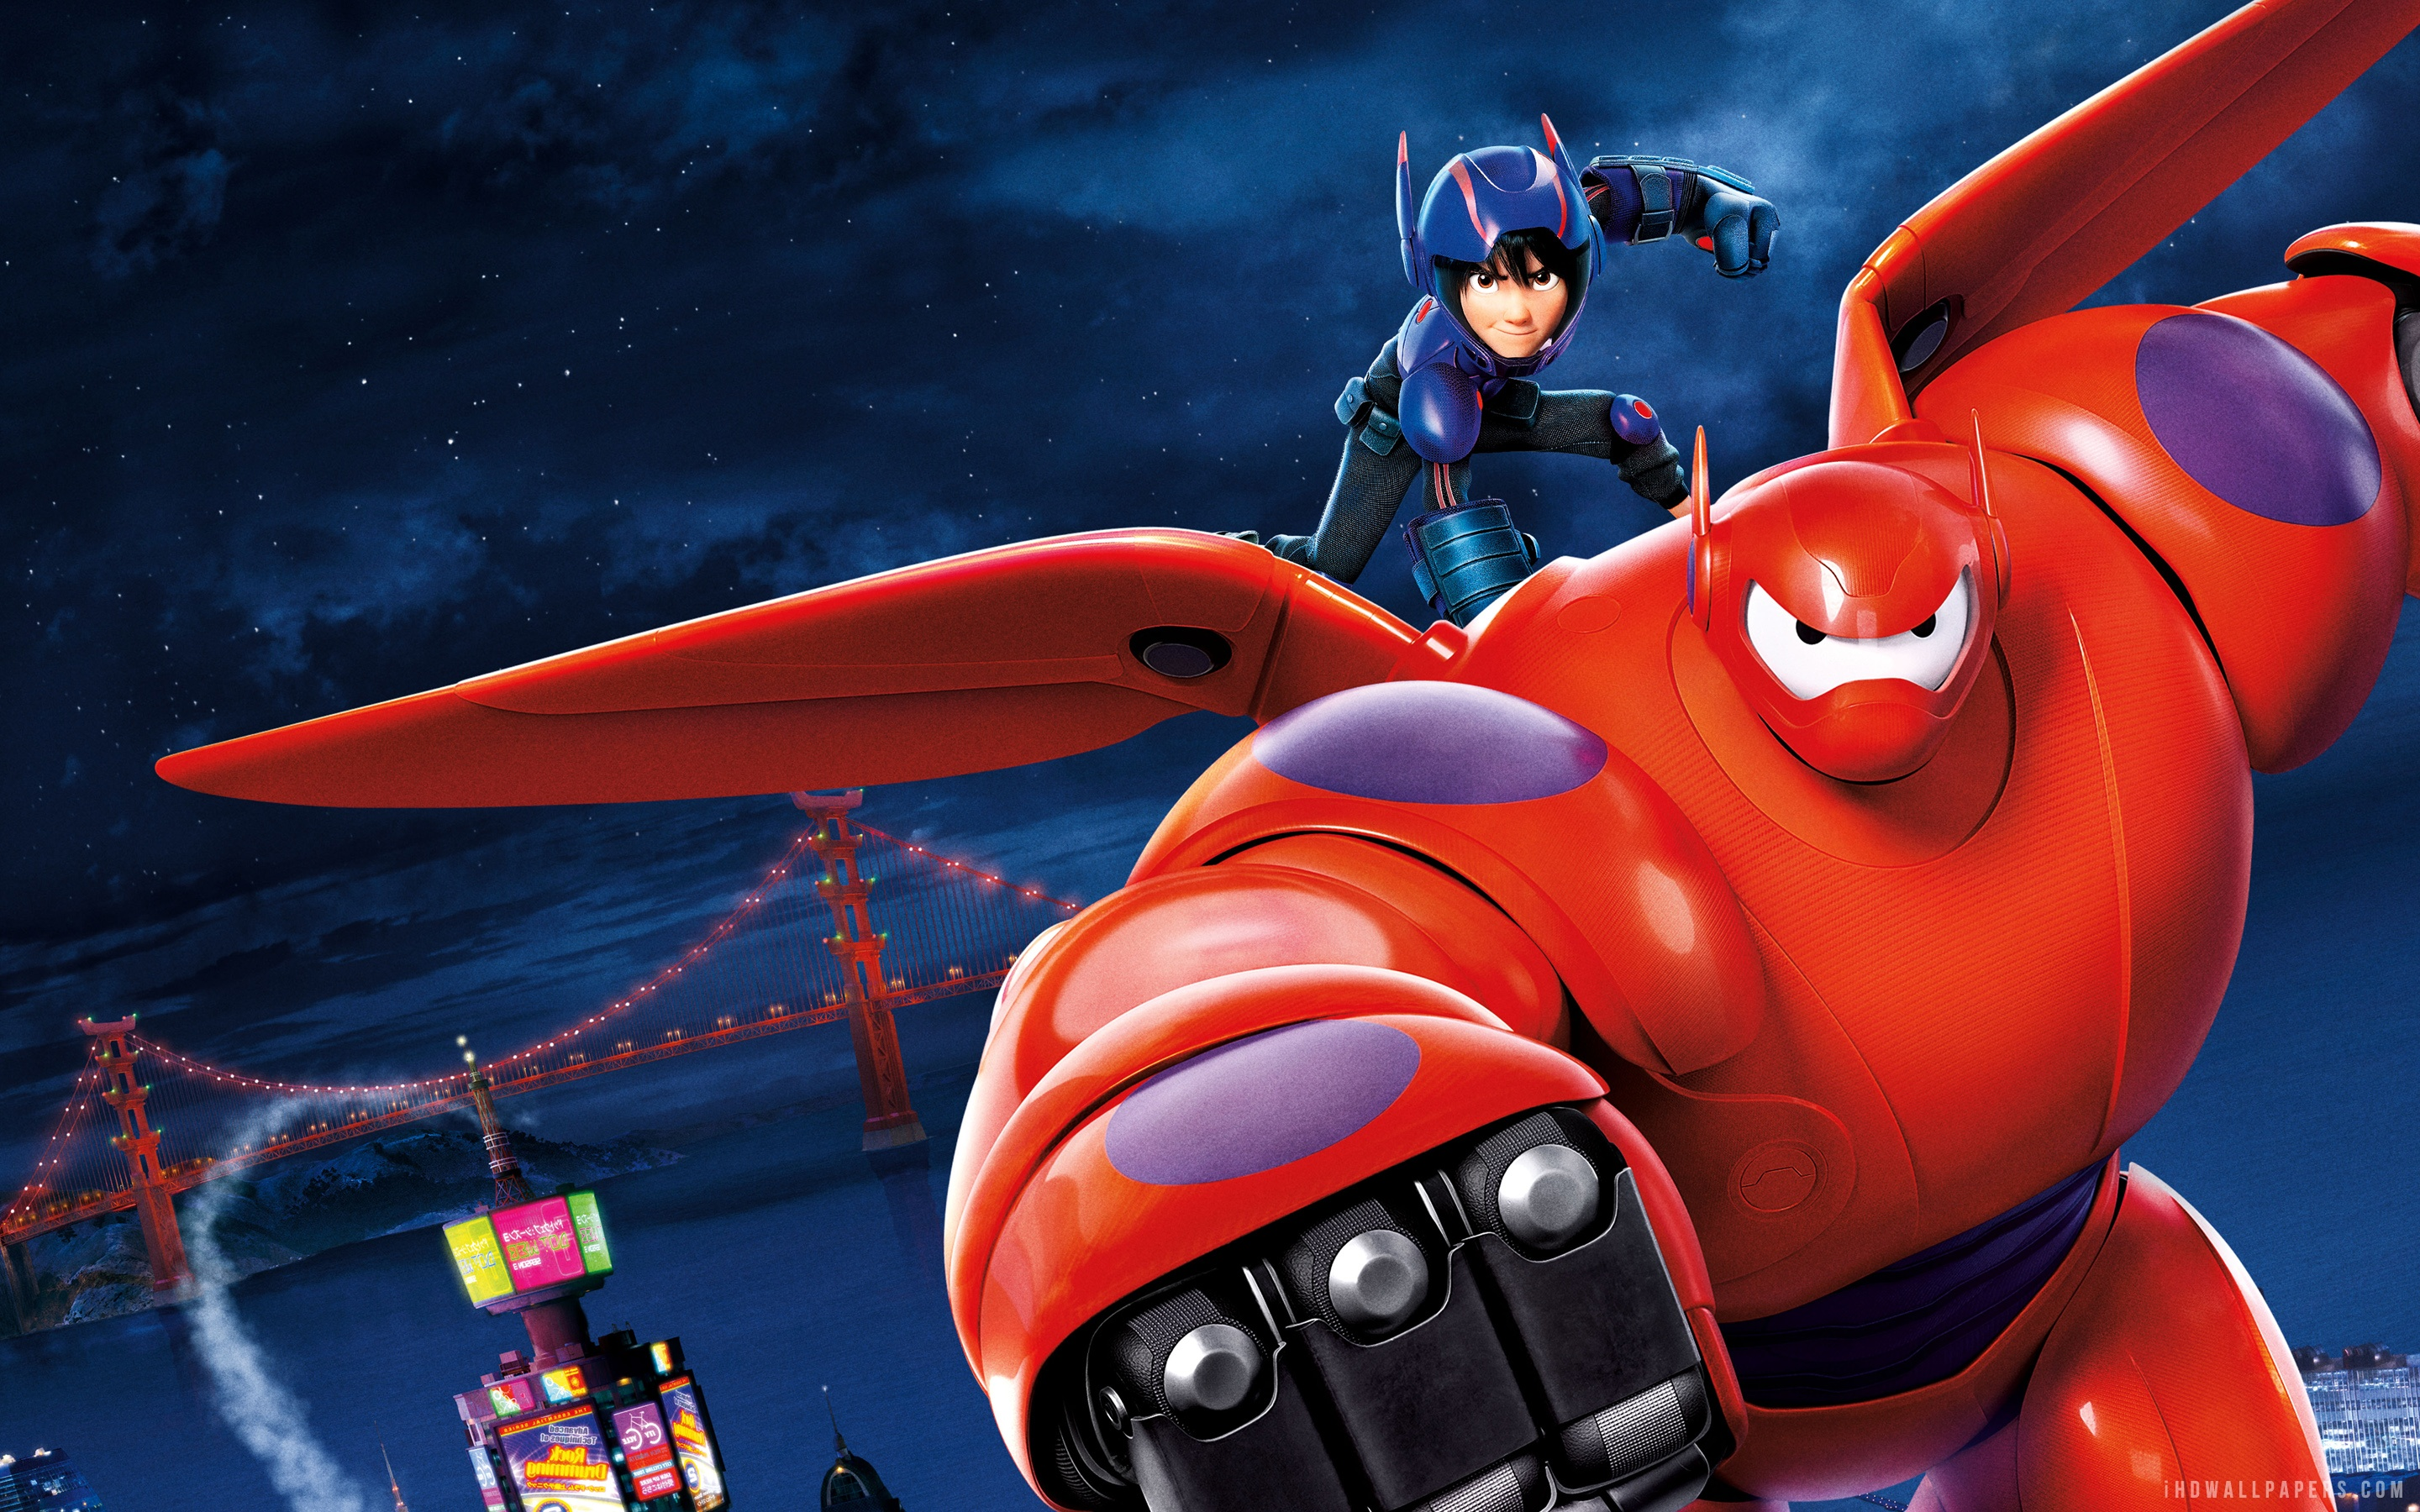 Big hero 6 hd wallpaper wallpapersafari - Superhero iphone wallpaper hd ...